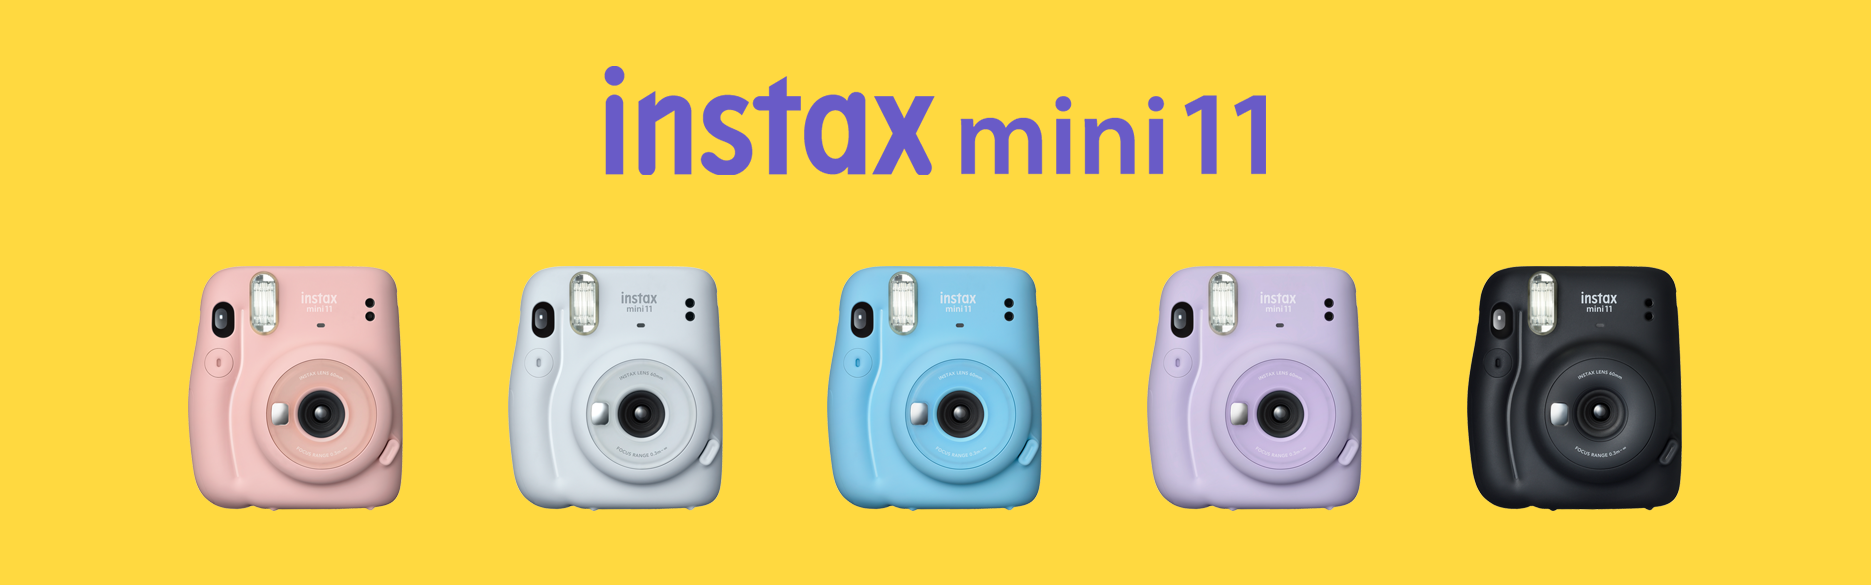 [image] instax mini 11 cameras lined up in row, every color from left to right - Blush Pink, Ice White, Sky Blue, Lilac Purple, and Charcoal Grey